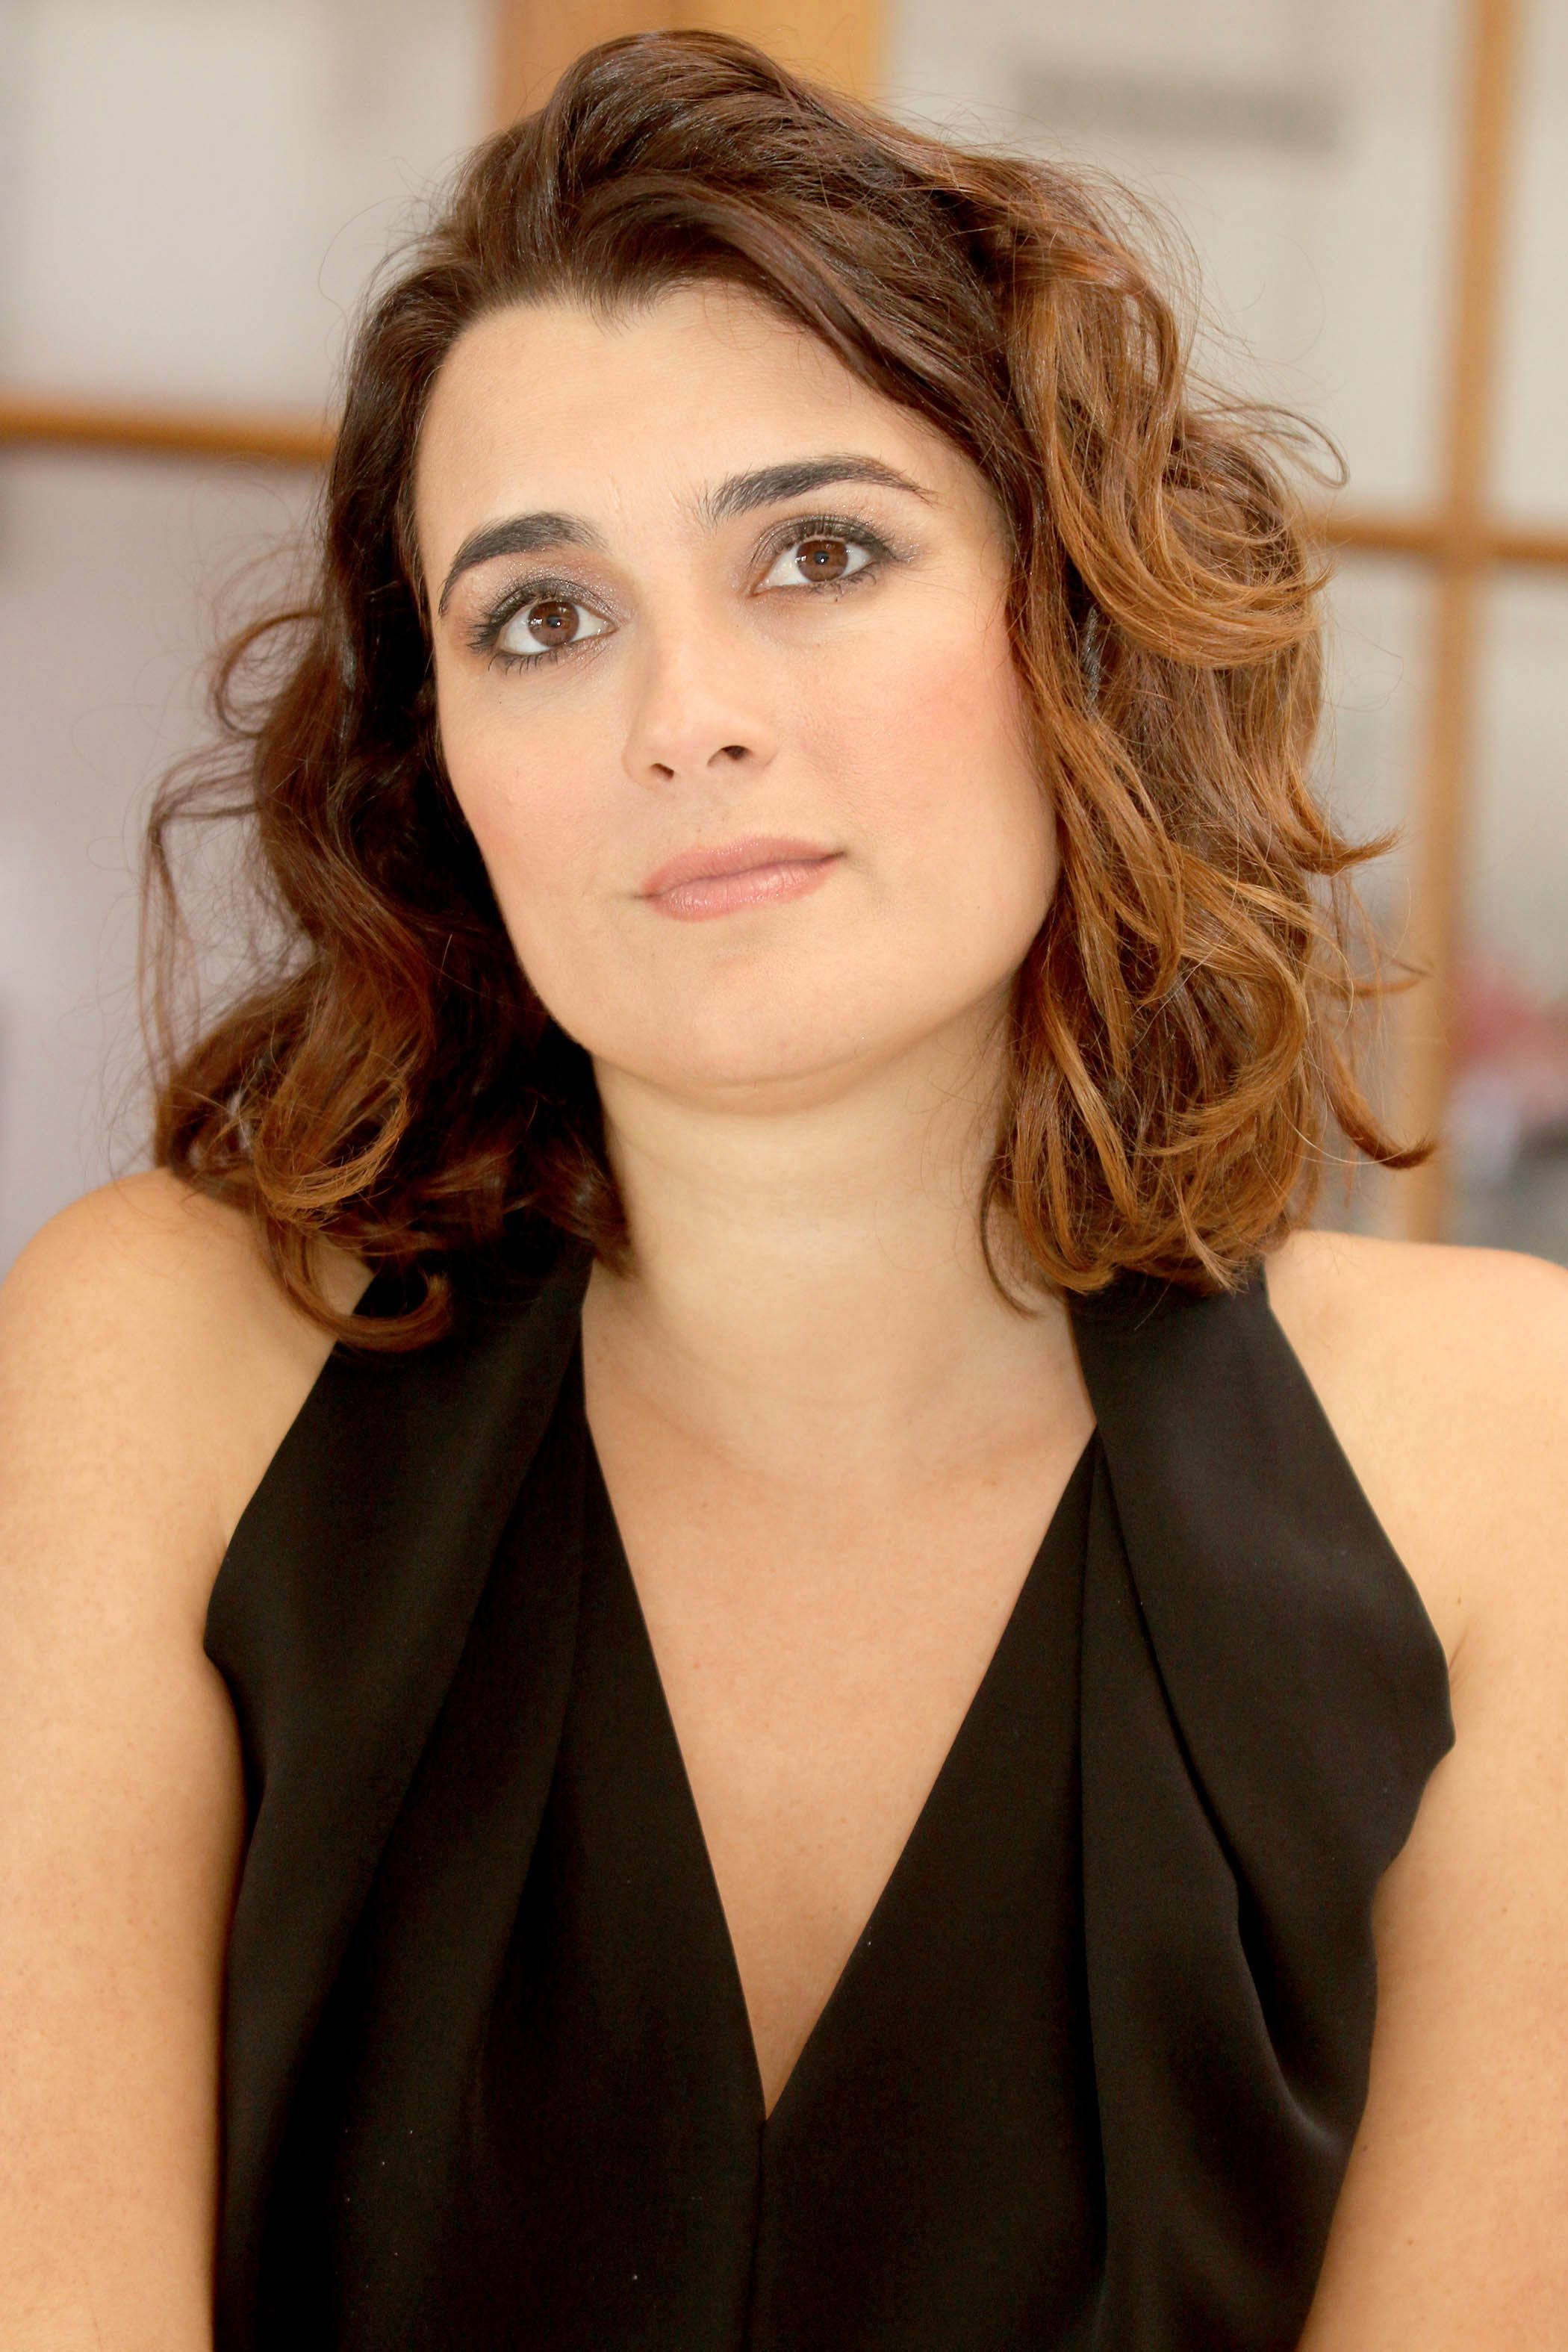 Biggest Ncis Ladies Gallery On Web Ladies Of Ncis Click Image To Close This Window Ziva David Photography Movies Hollywood Actor